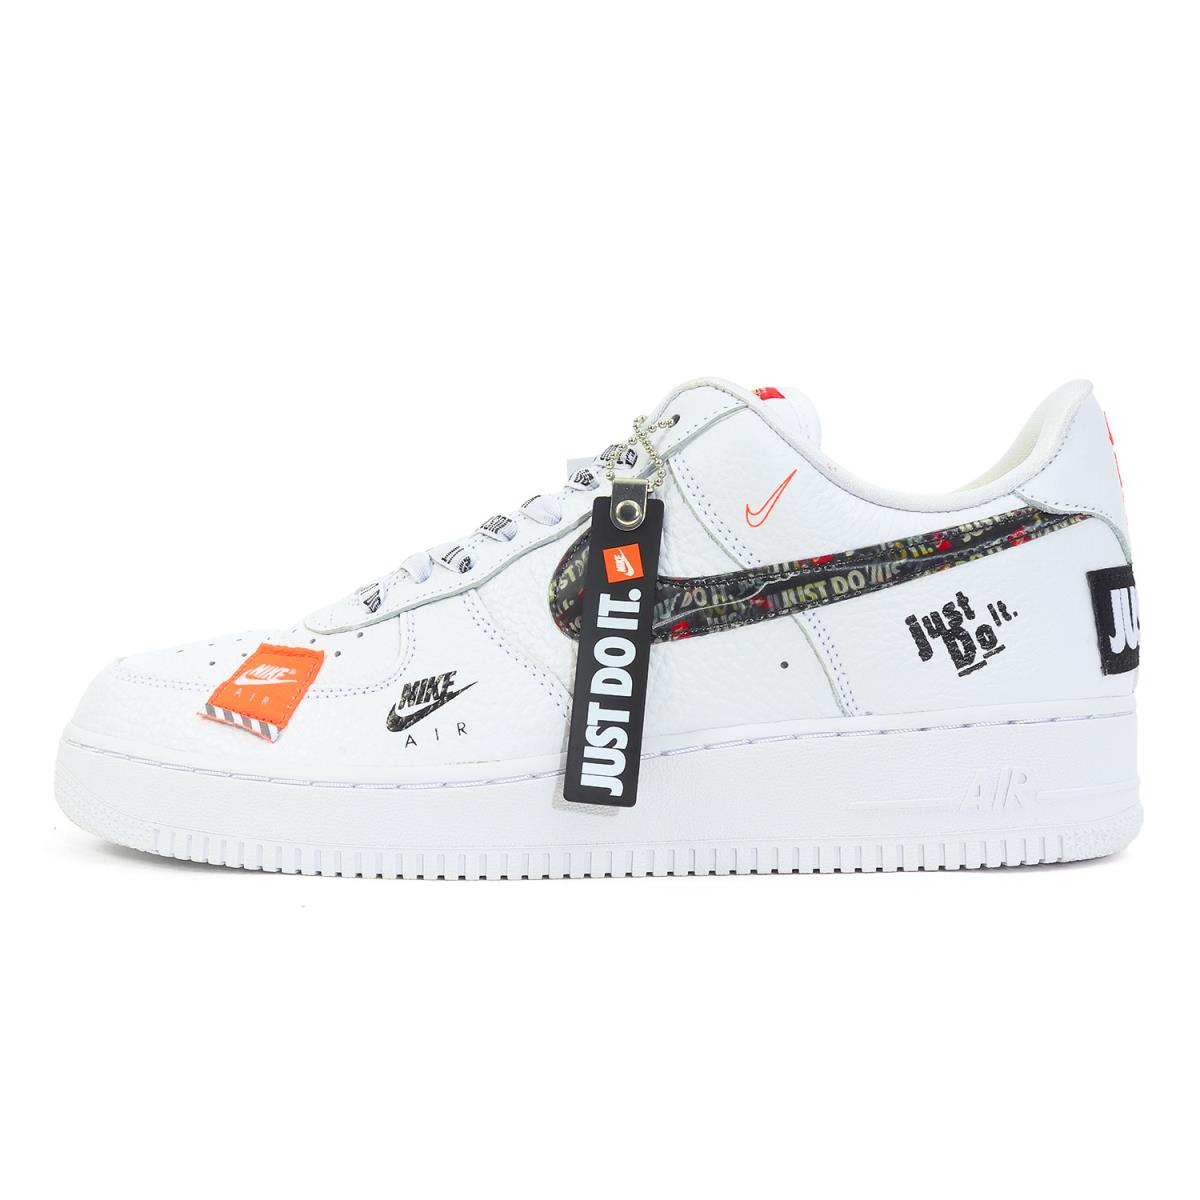 new products afac3 6b29c NIKE (Nike) AIR FORCE 1 07 PRM JDI (AR7719-100) white US11.5(29.5cm)